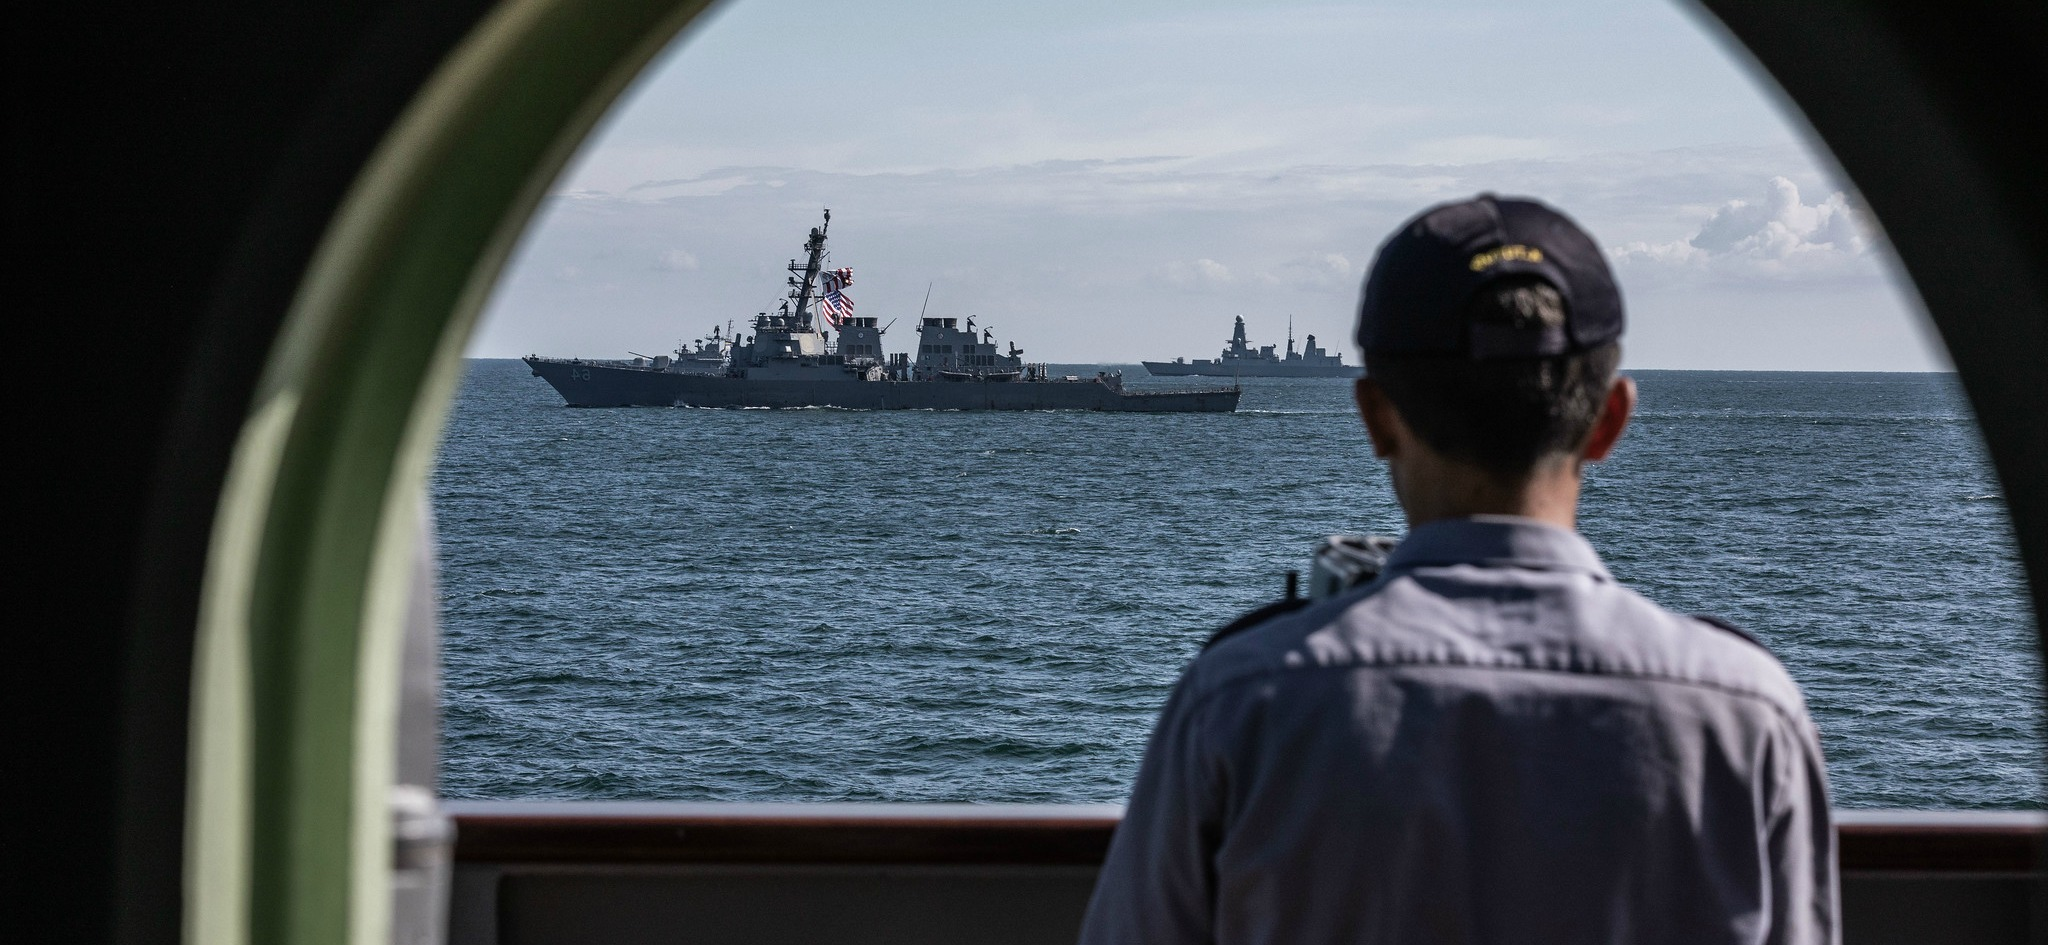 A Turkish sailor watches a formation of warships from the frigate TCG Turgutreis during Exercise Sea Breeze 2019, a multinational maritime exercise co-led by the United States and Ukraine. Nineteen nations participated, including 15 NATO Allies.